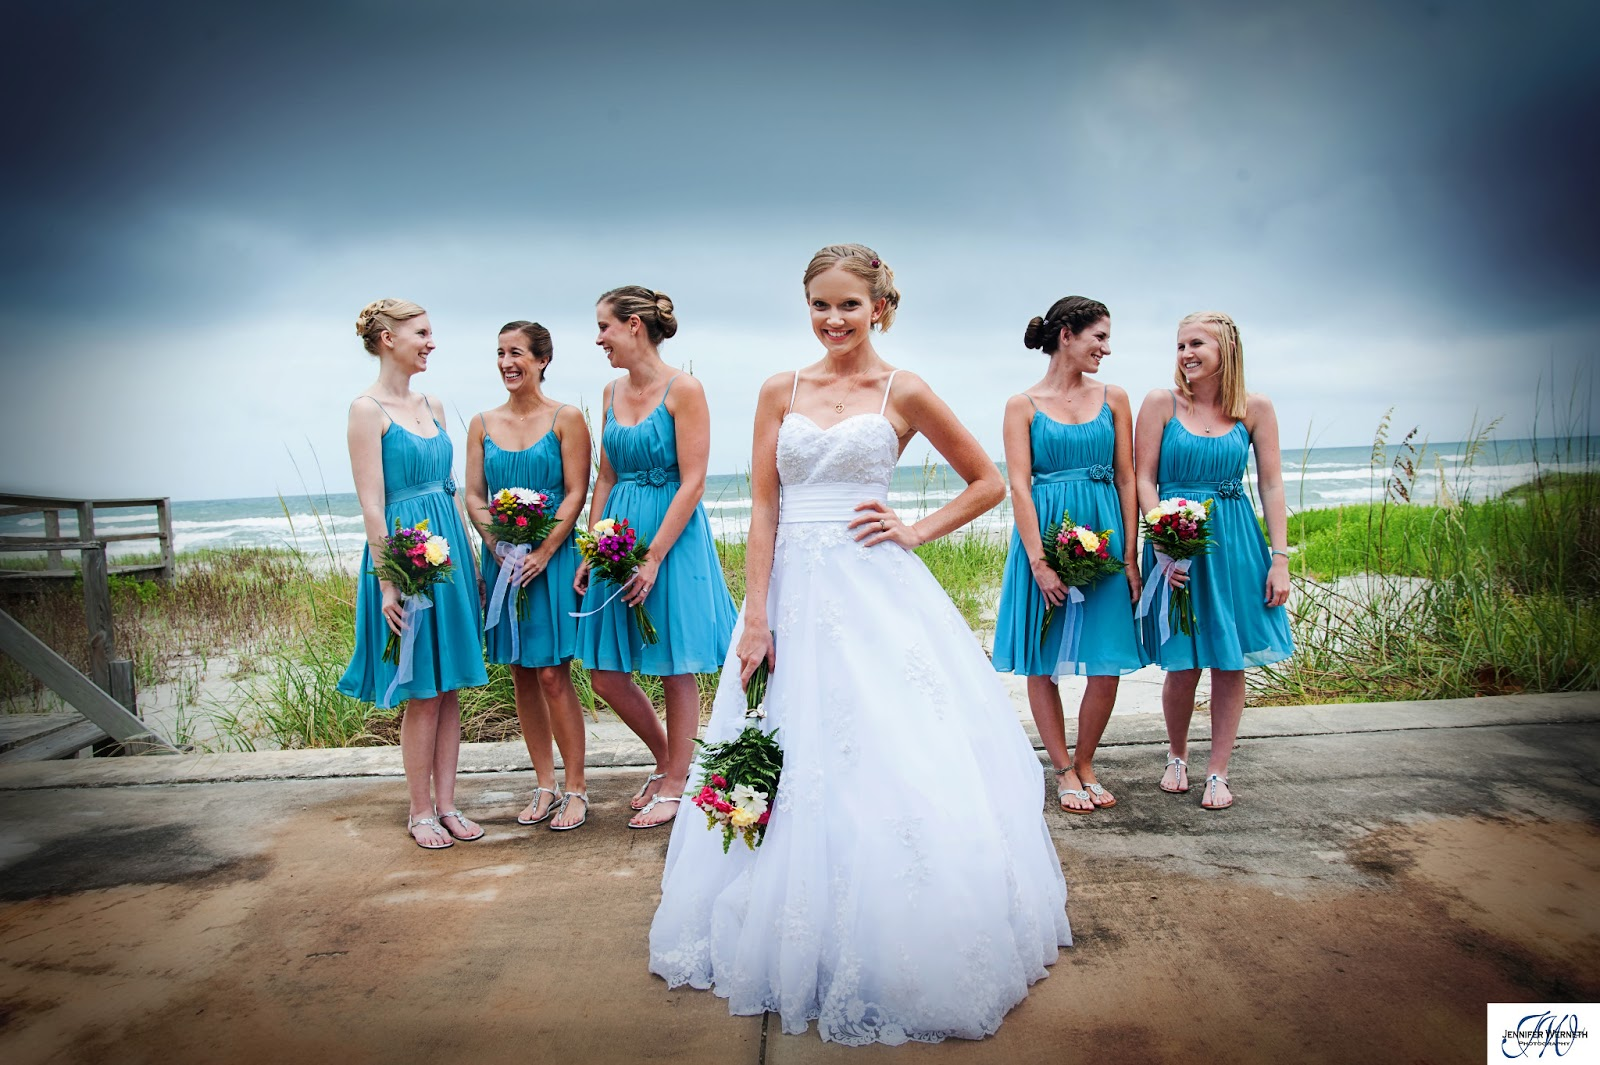 Wedding Photography In Cocoa Beach Fl At The Beach Place Guesthouses Angela And Matts Vintage